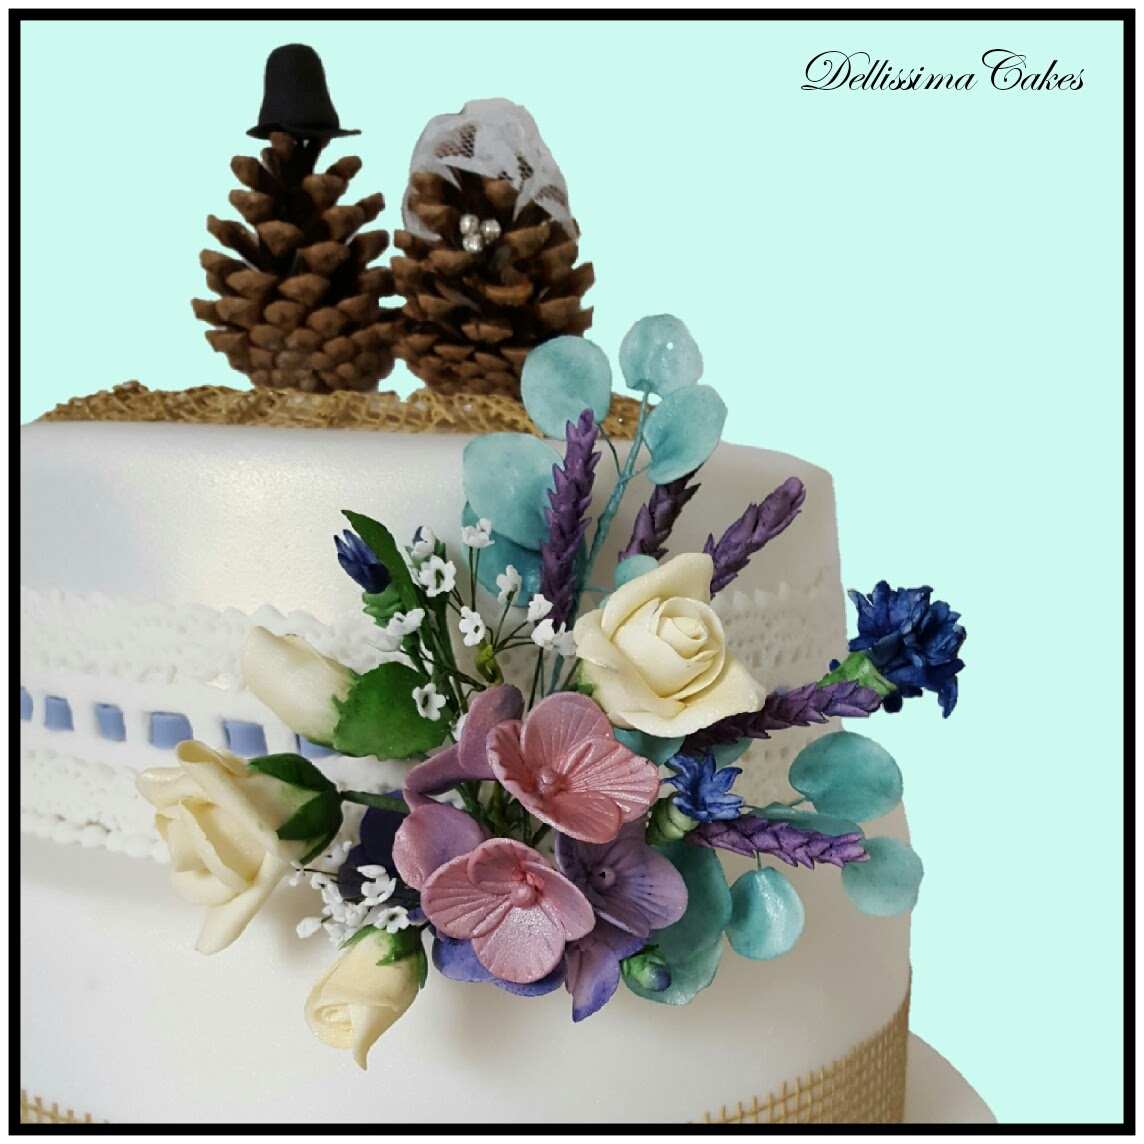 Pinecone Wedding Cake 1.jpg